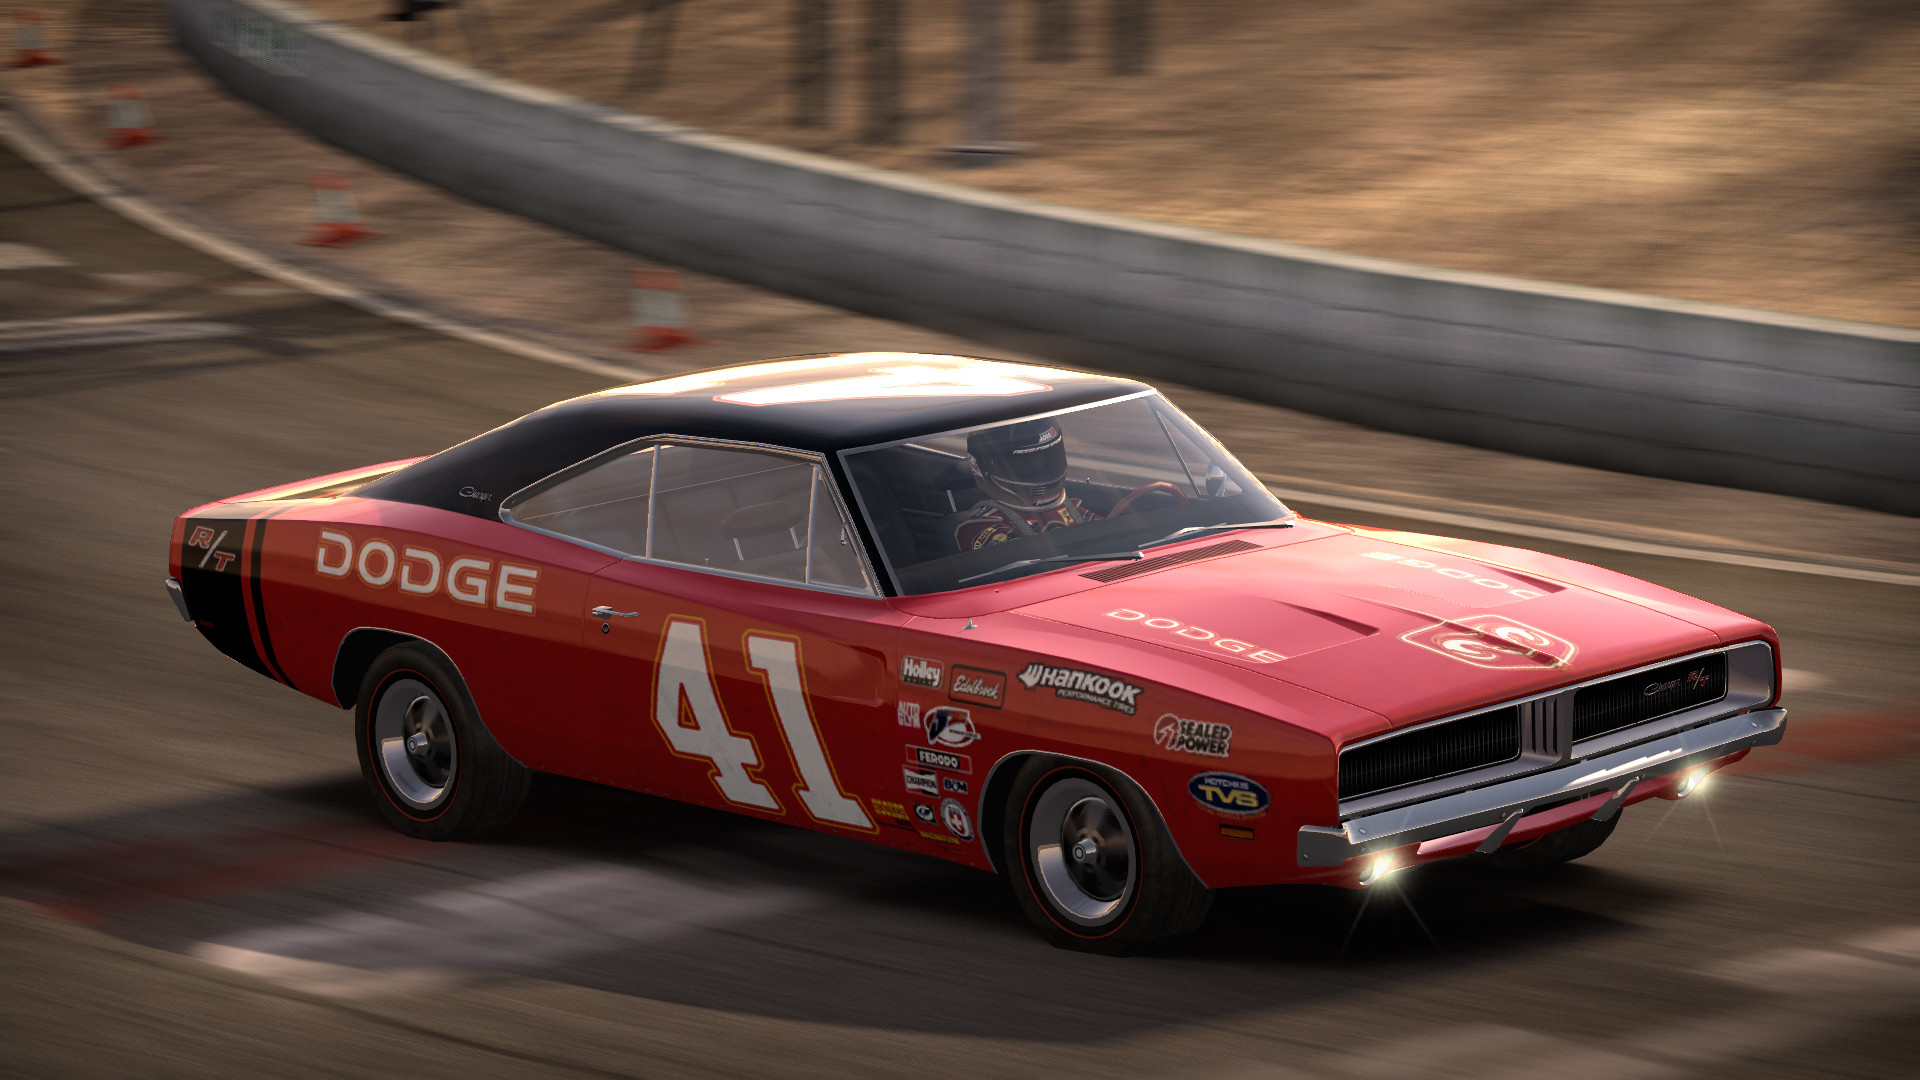 1969 Dodge Charger R/T racing game graphic.